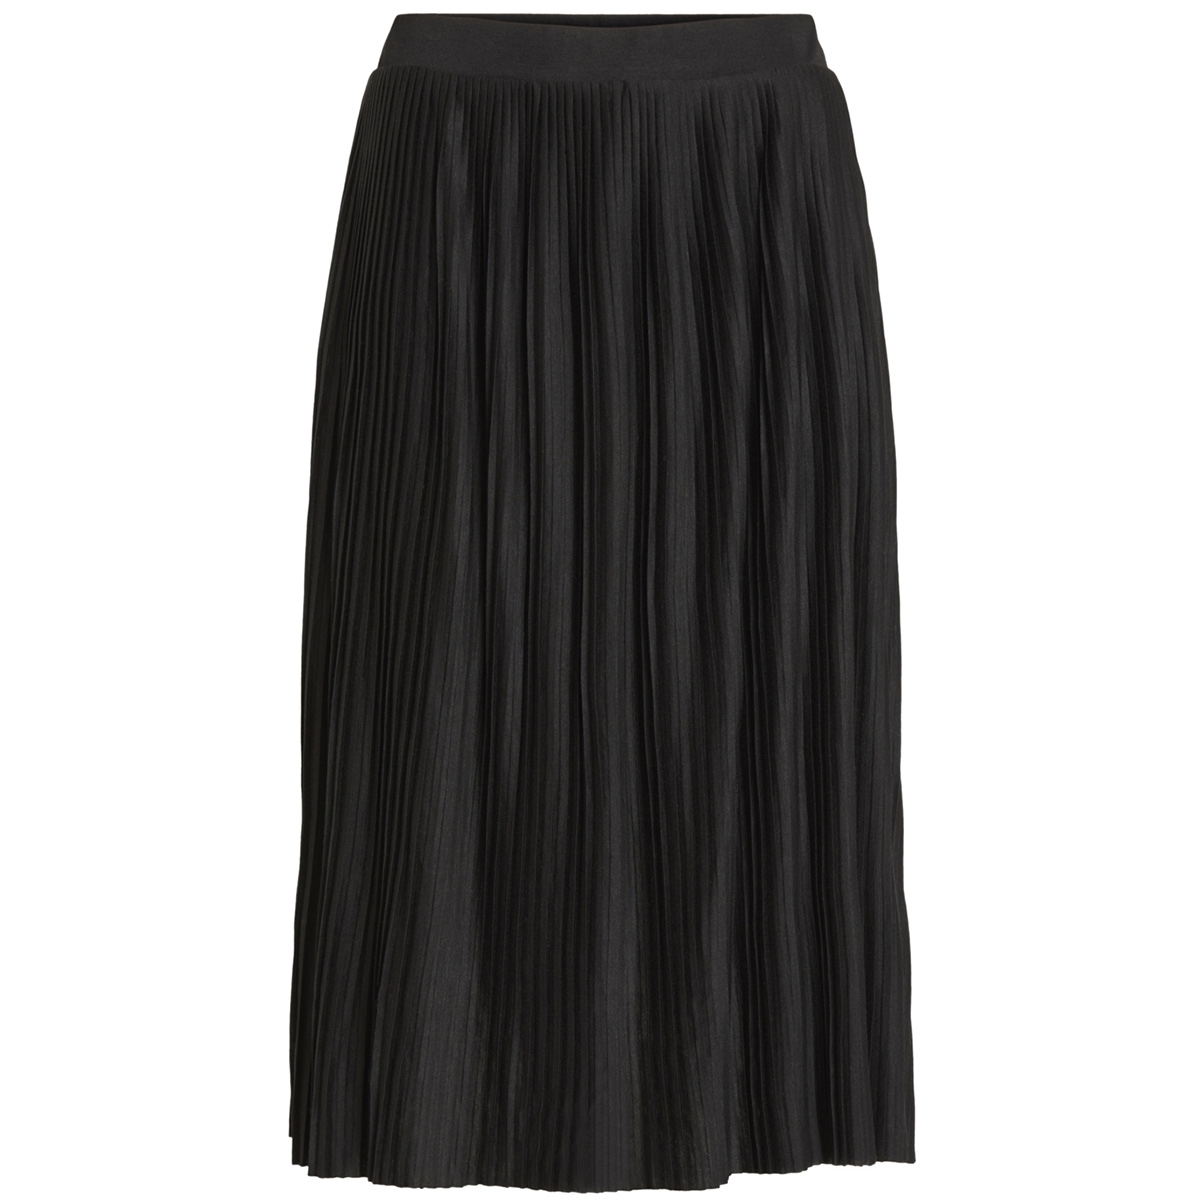 vipliss hw midi skirt 14052997 vila rok black